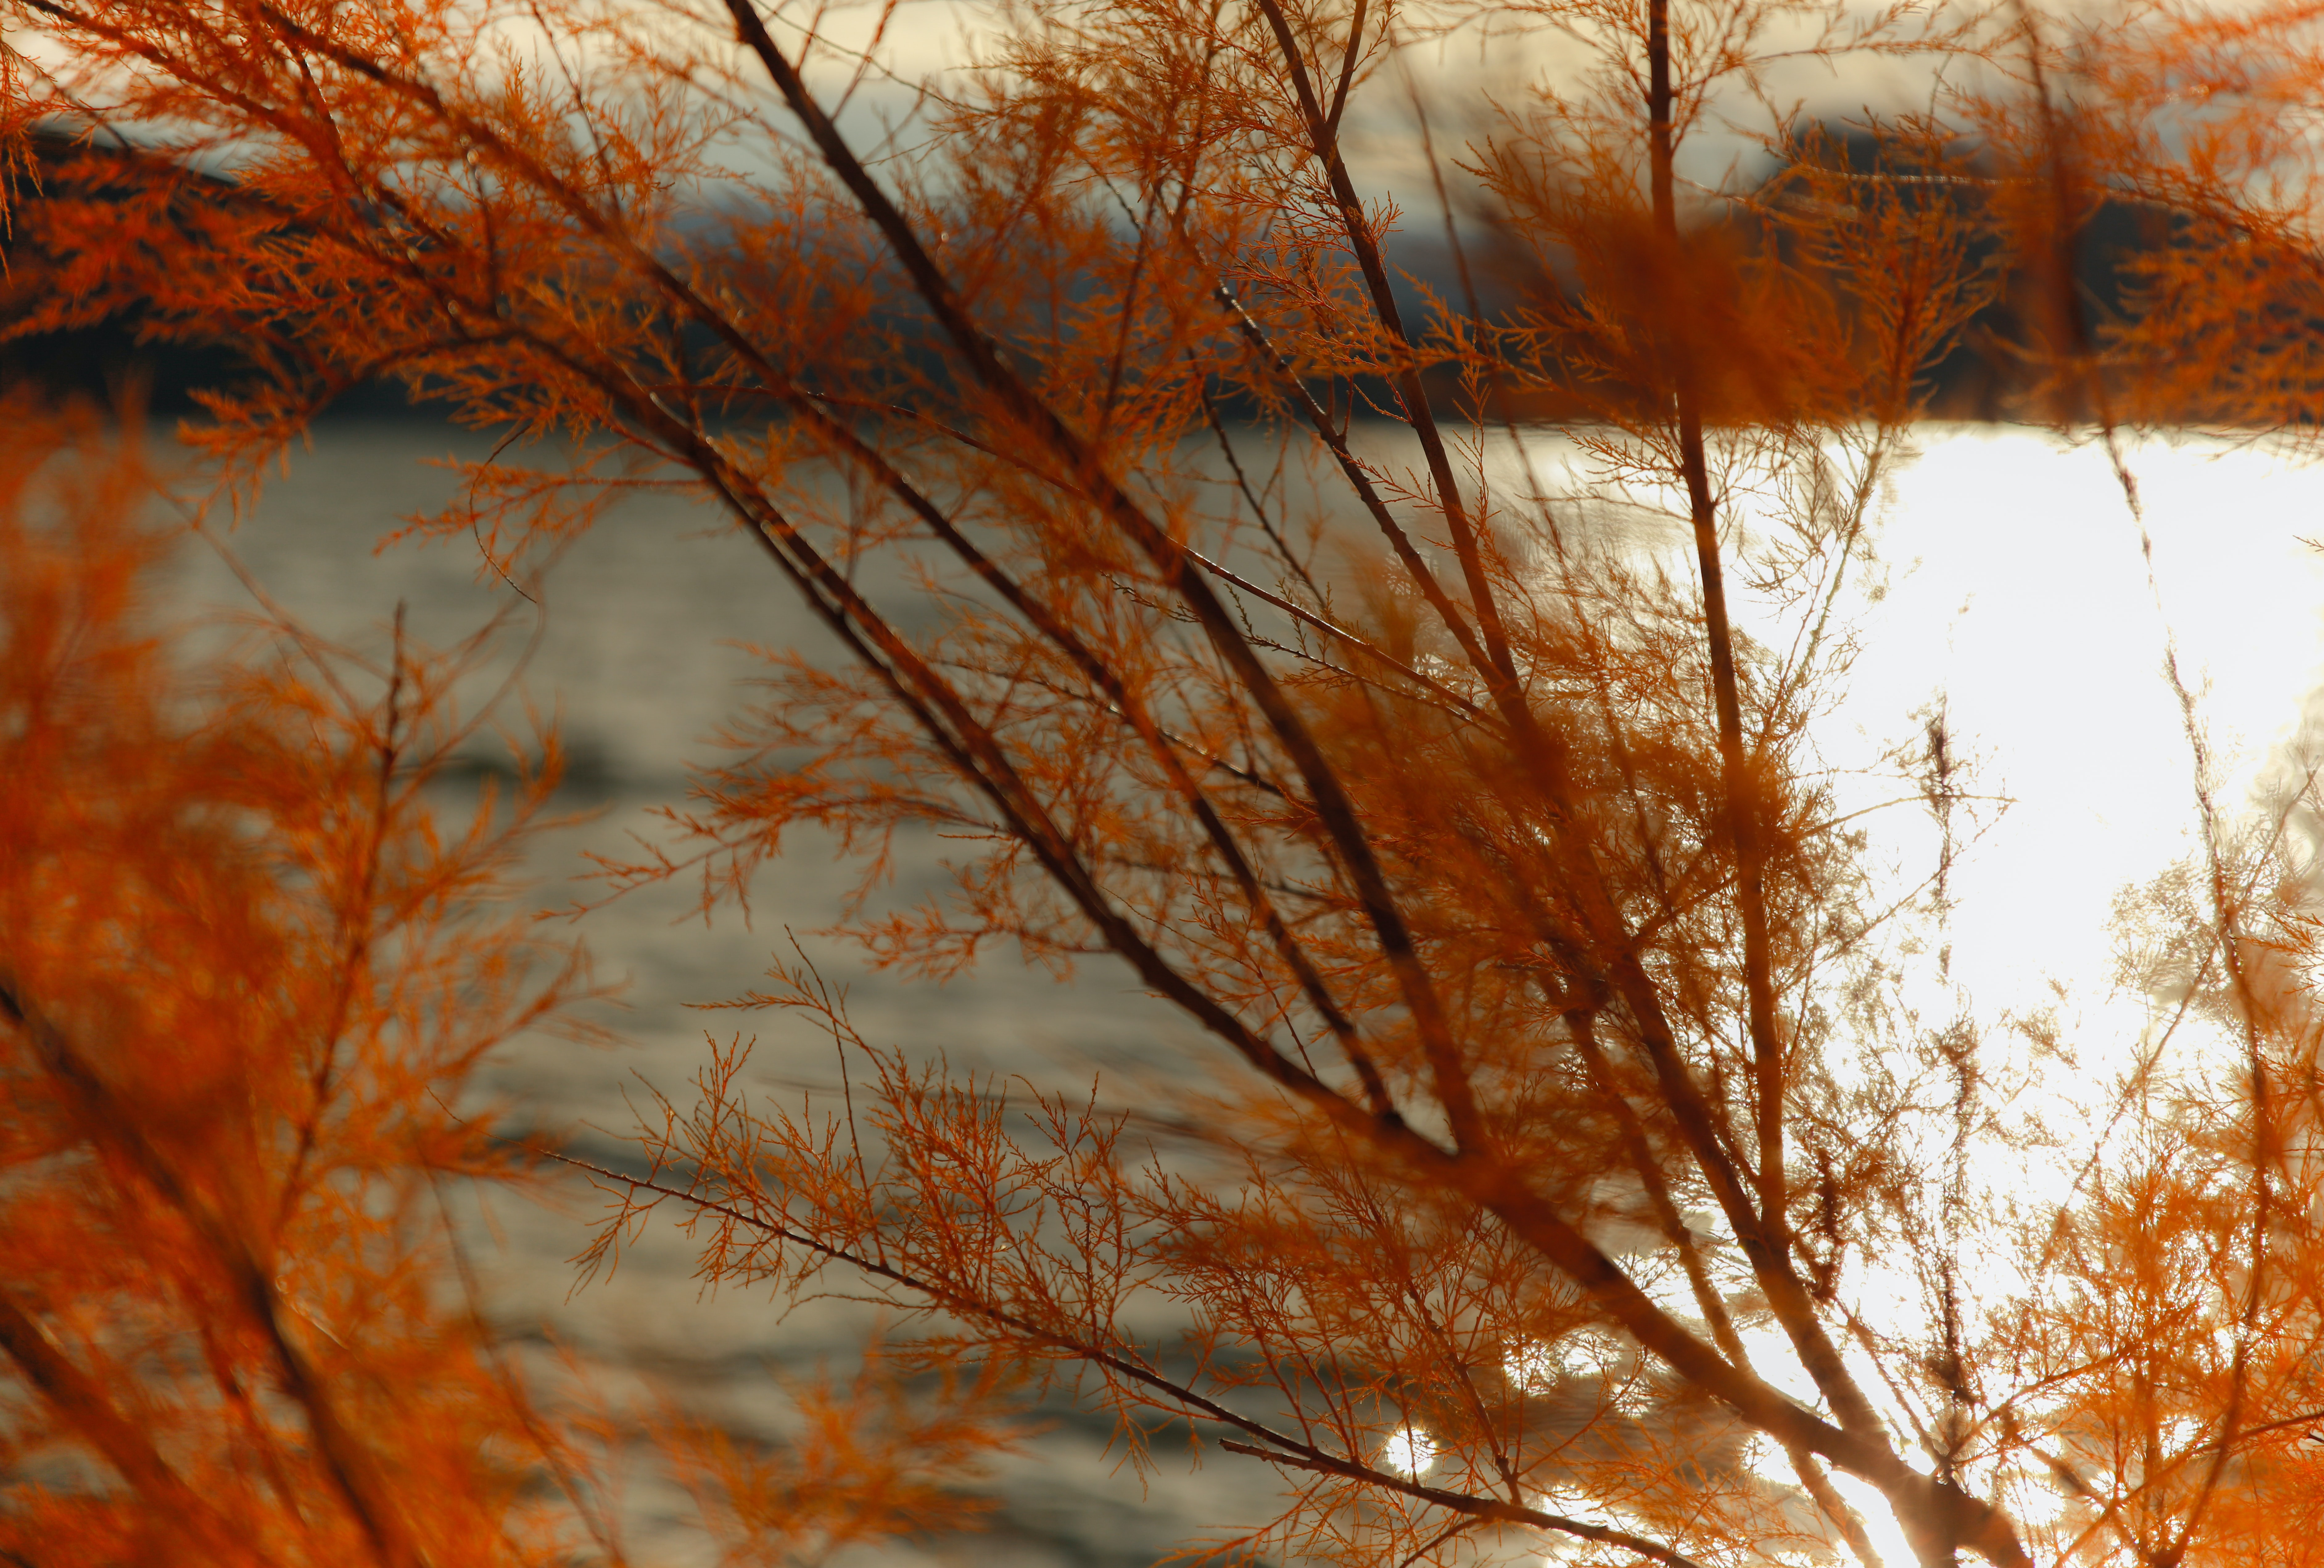 orange leaved tree next to body of water